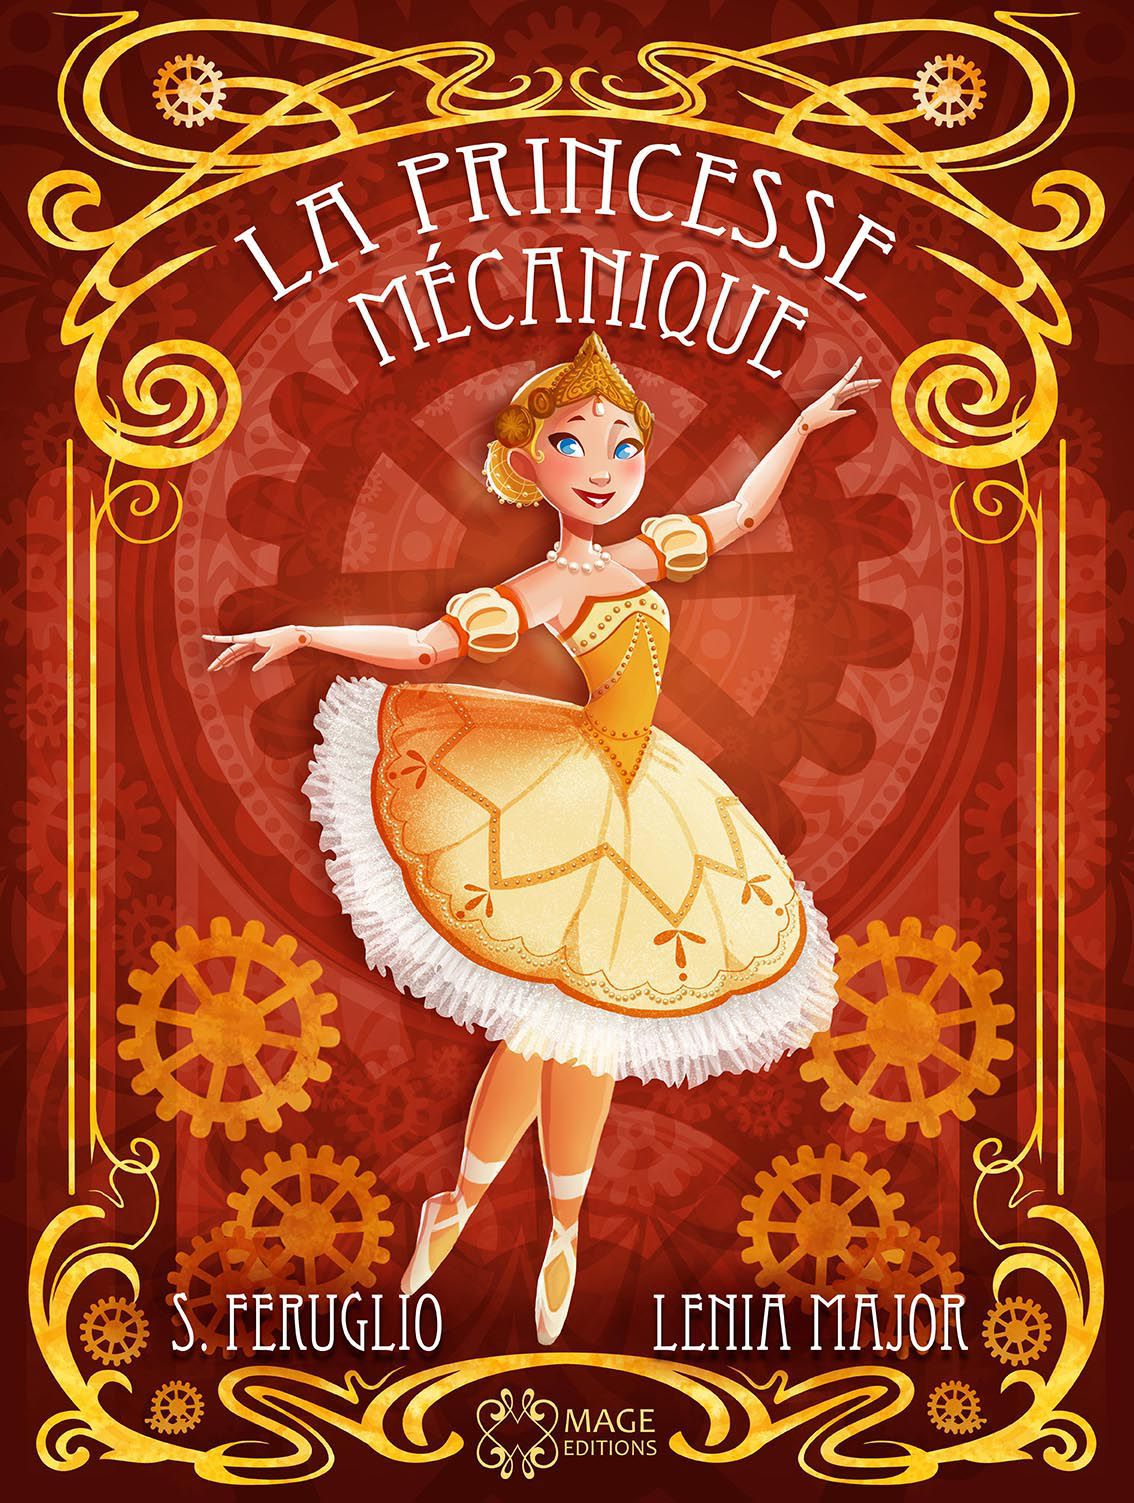 La Princesse Mécanique, par L. Major, ill. S. Feruglio.